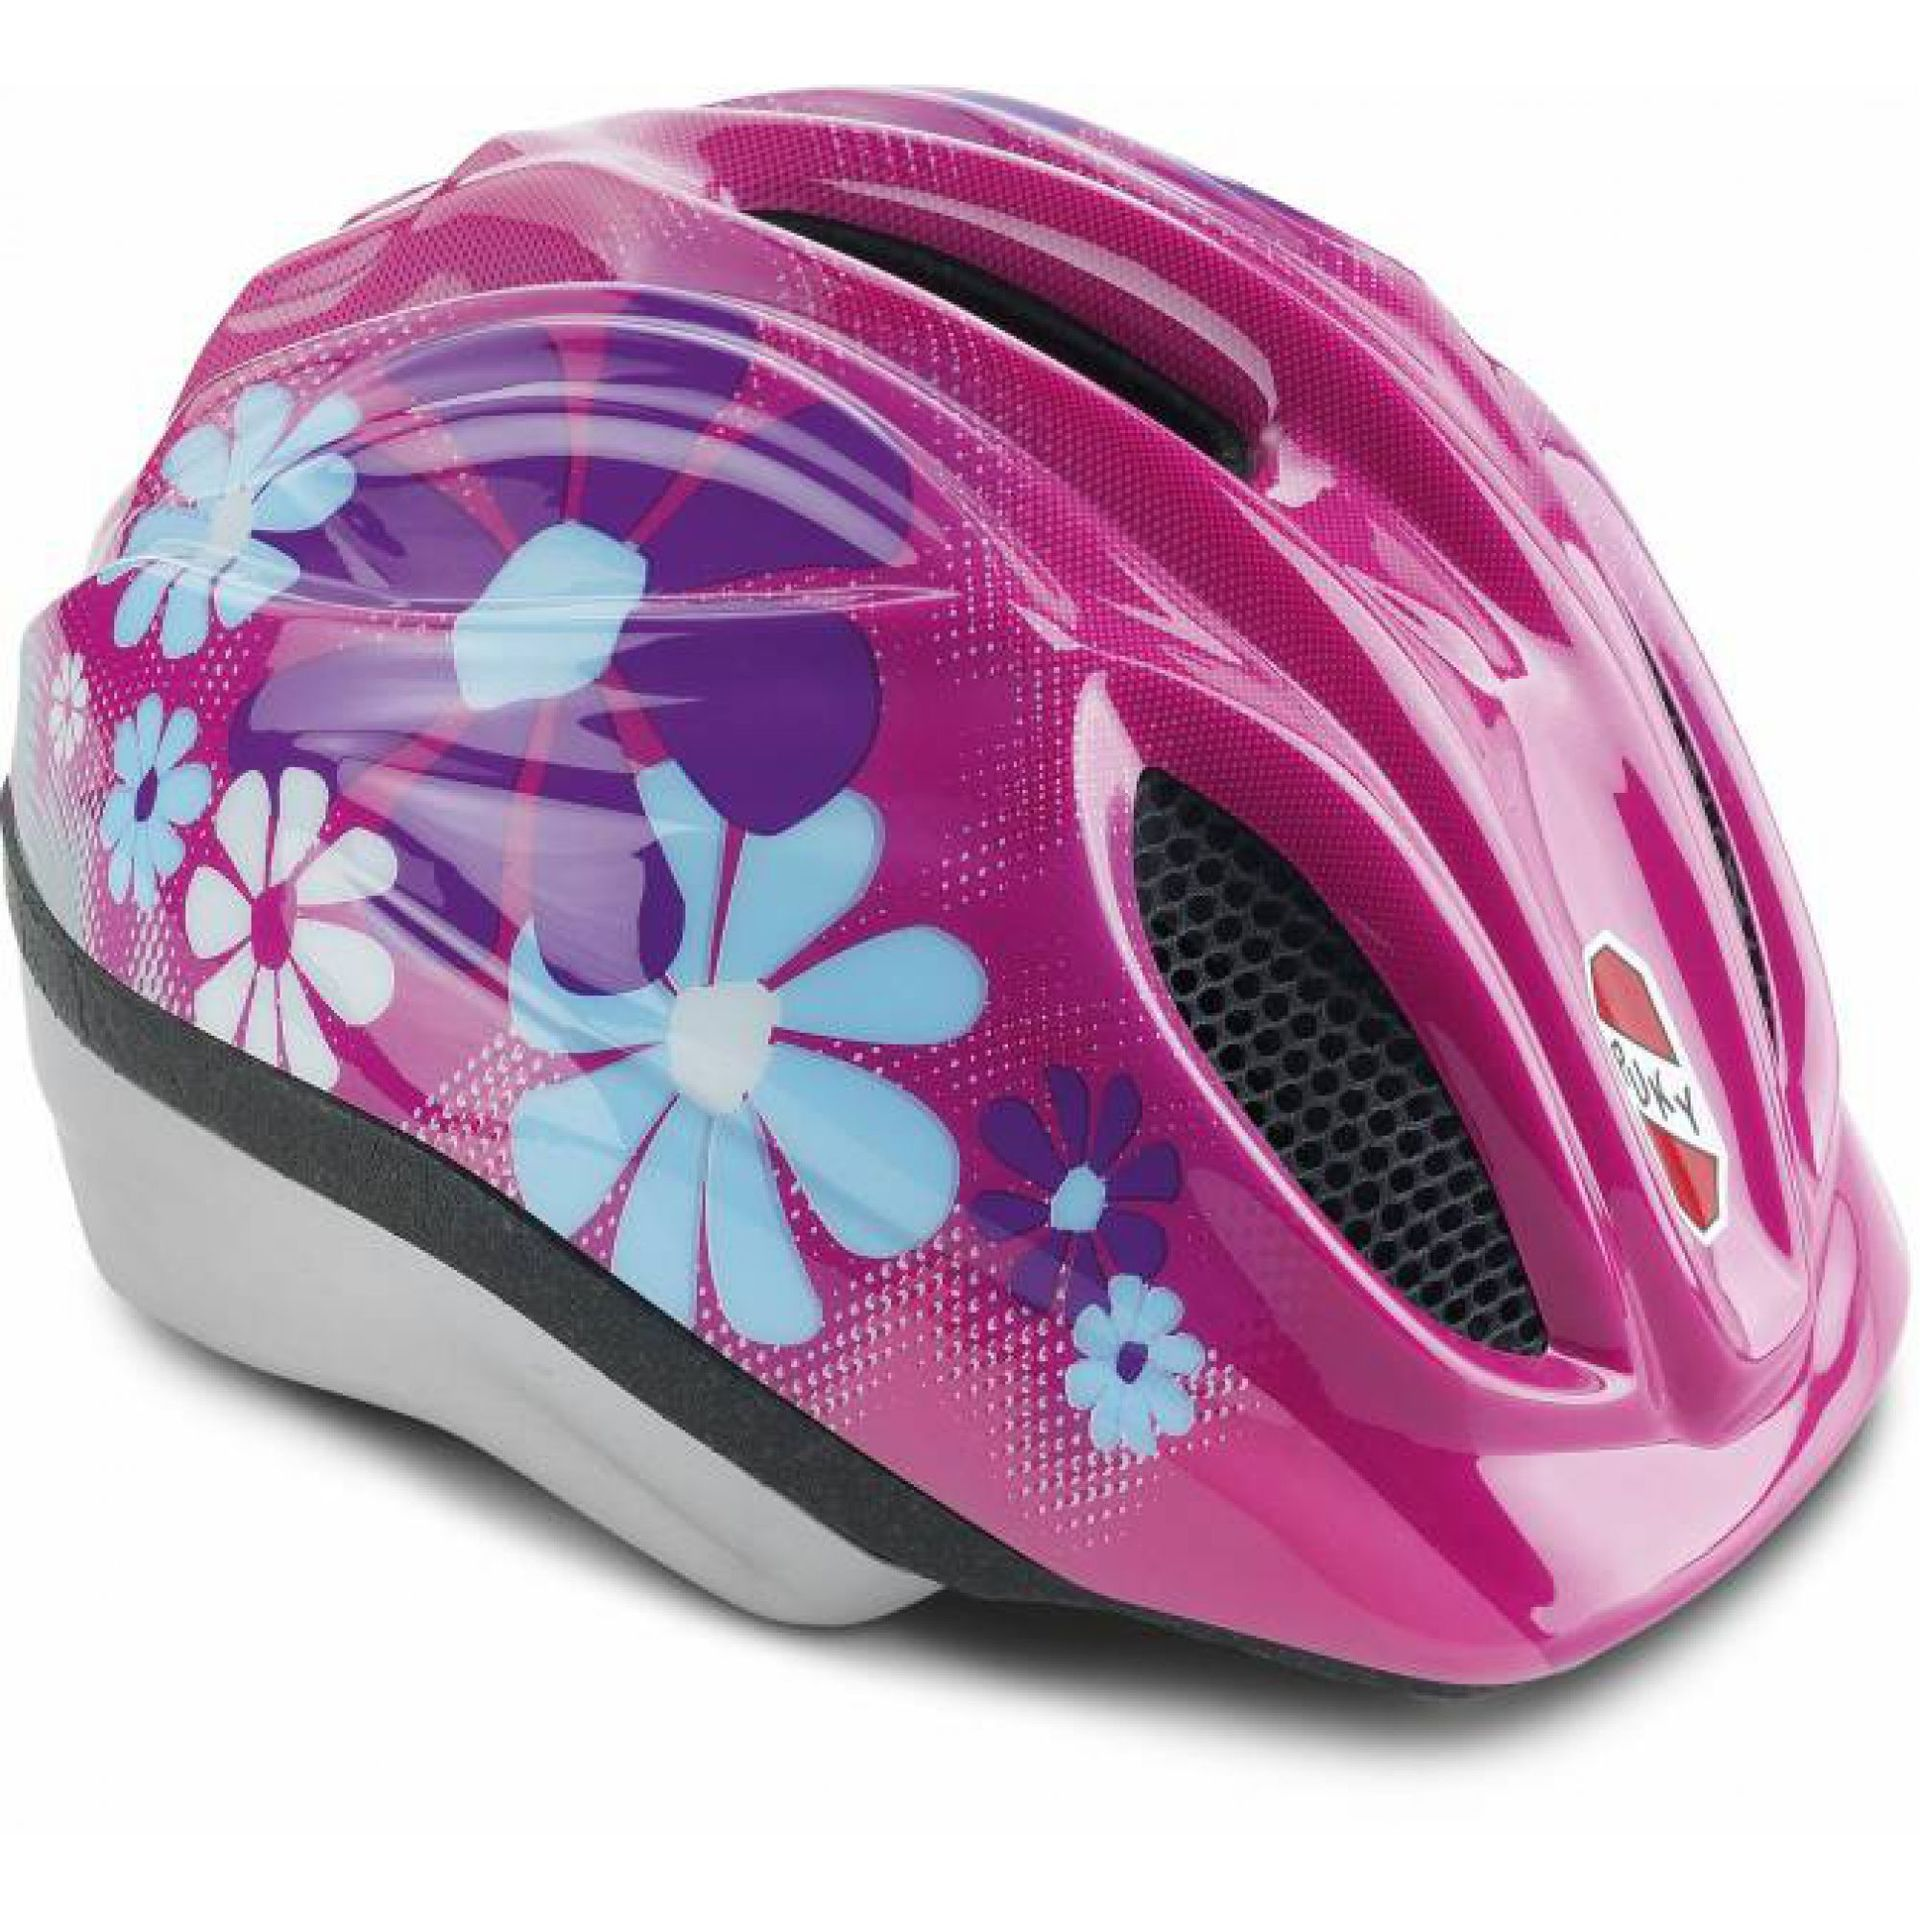 KASK PUKY PH 1 LOVELY PINK